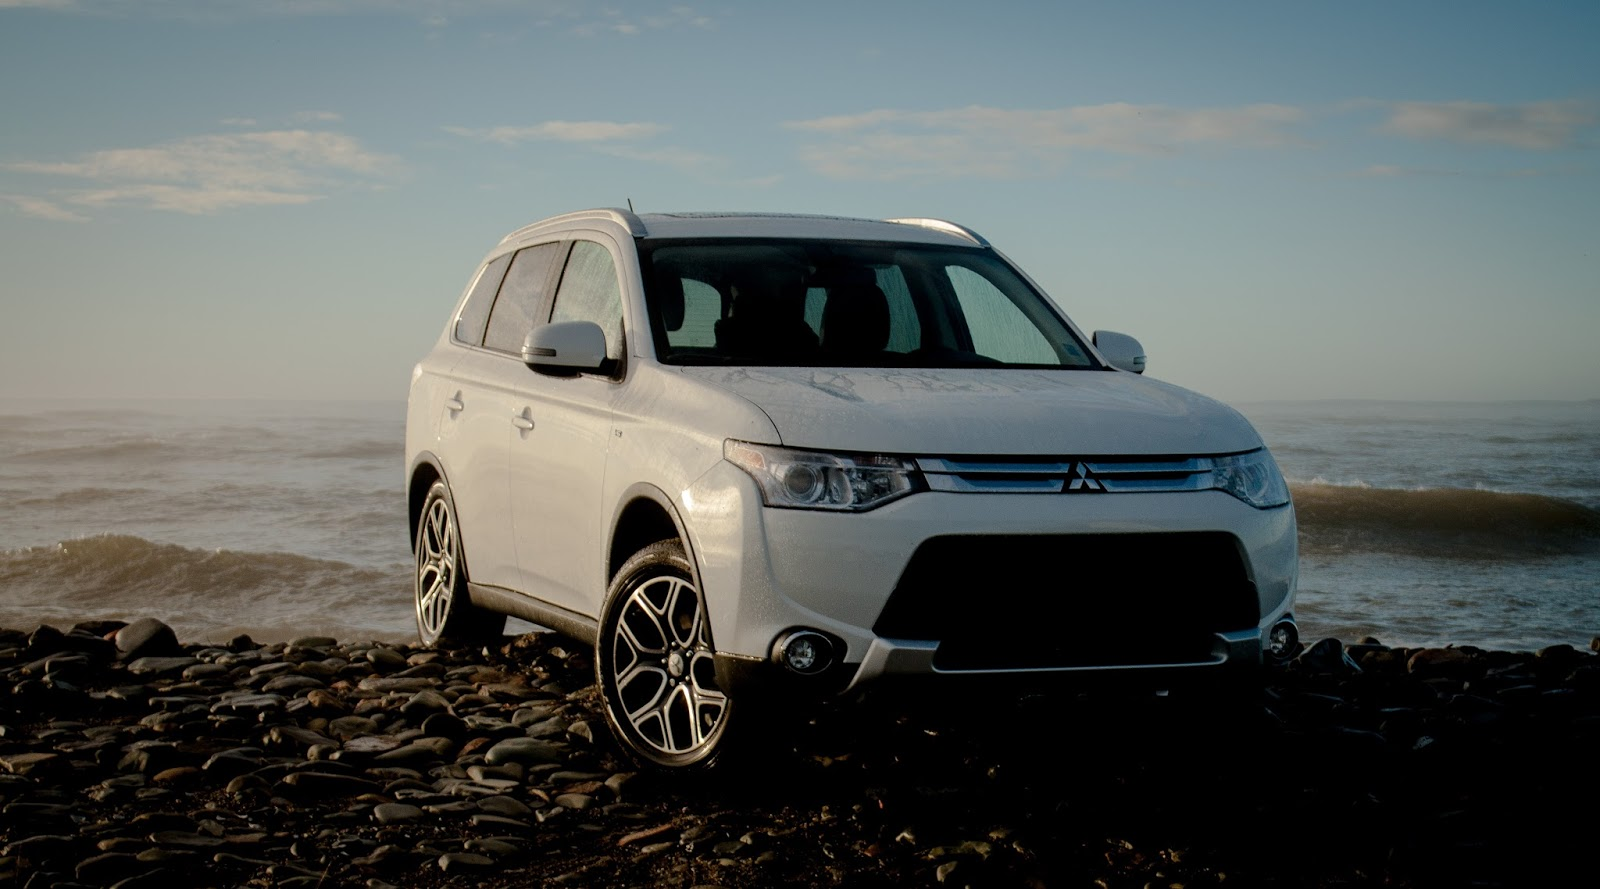 2015 Mitsubishi Outlander GT S-AWC Review - Bigger Or Cheaper Would Be Better - GOOD CAR BAD CAR